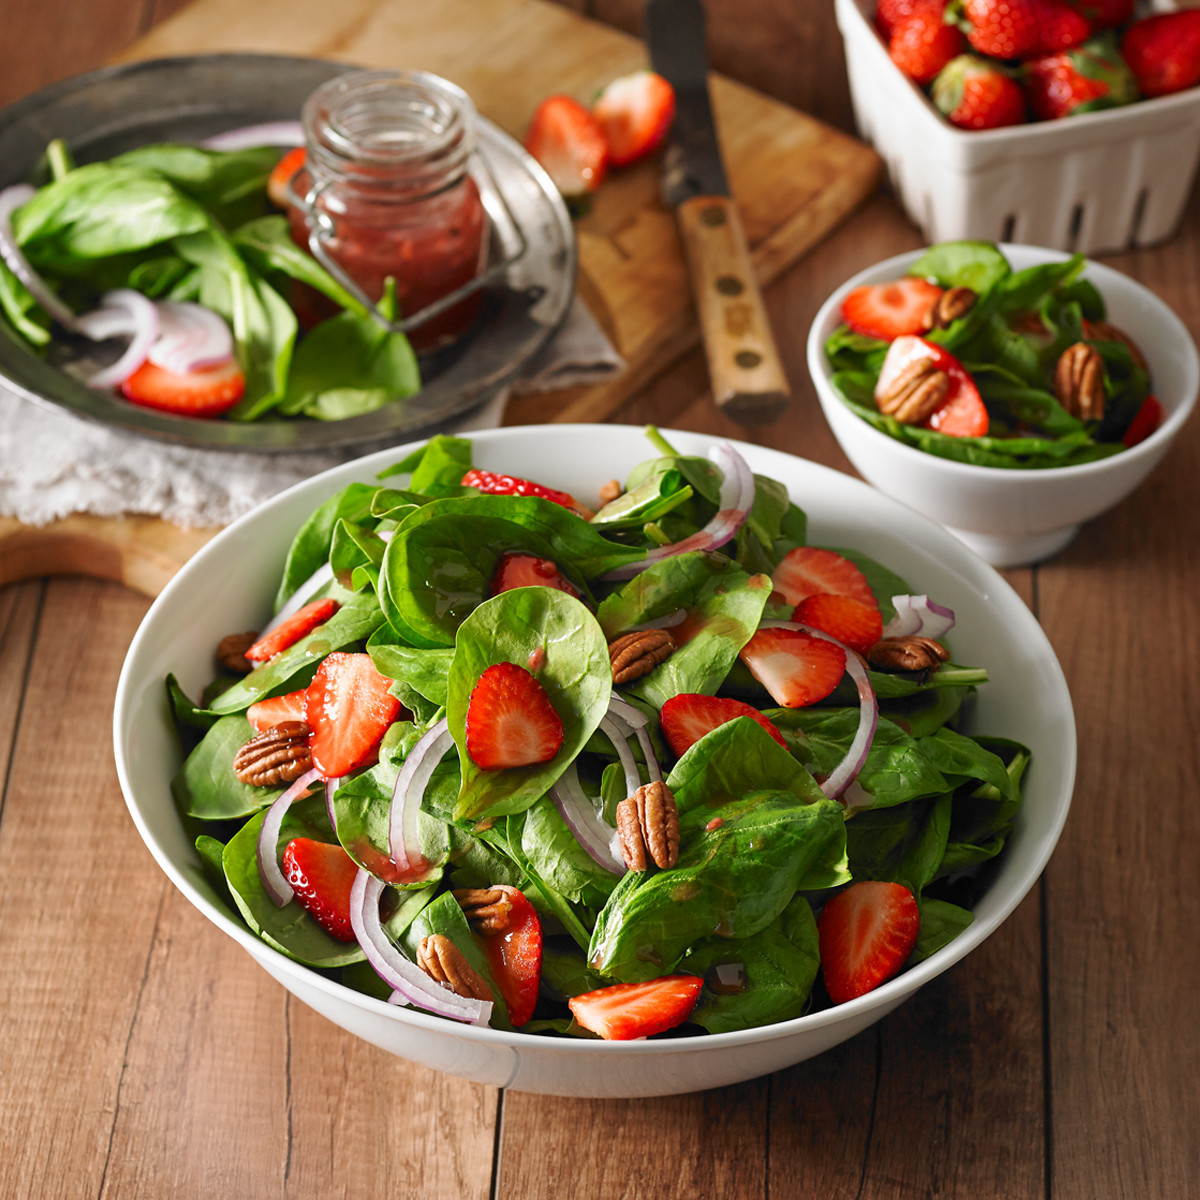 Strawberry Pecan & Spinach Salad - Serves 8 People